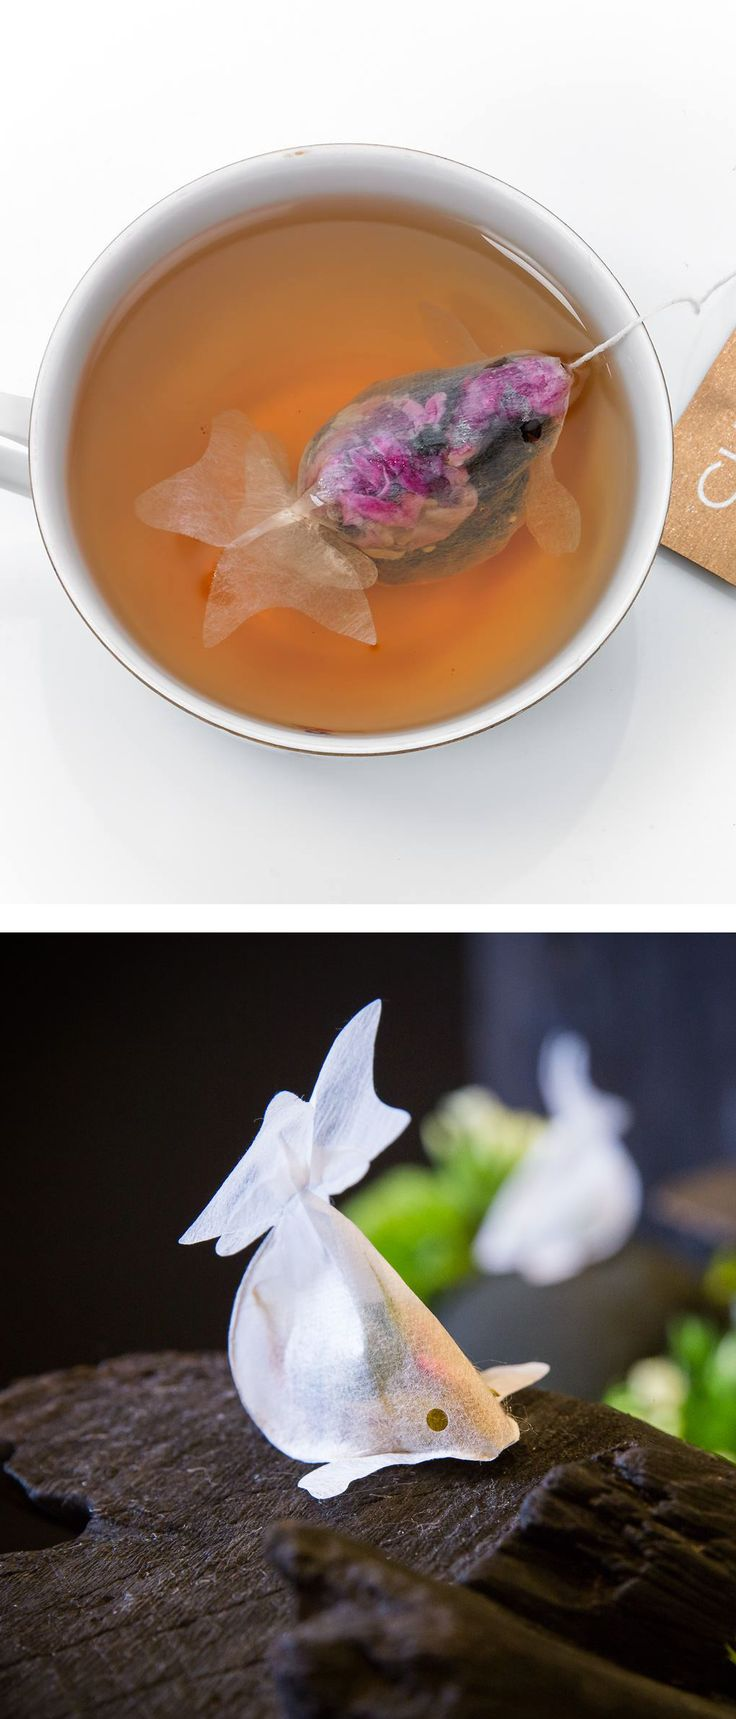 Whimsical tea bags shaped like goldfish